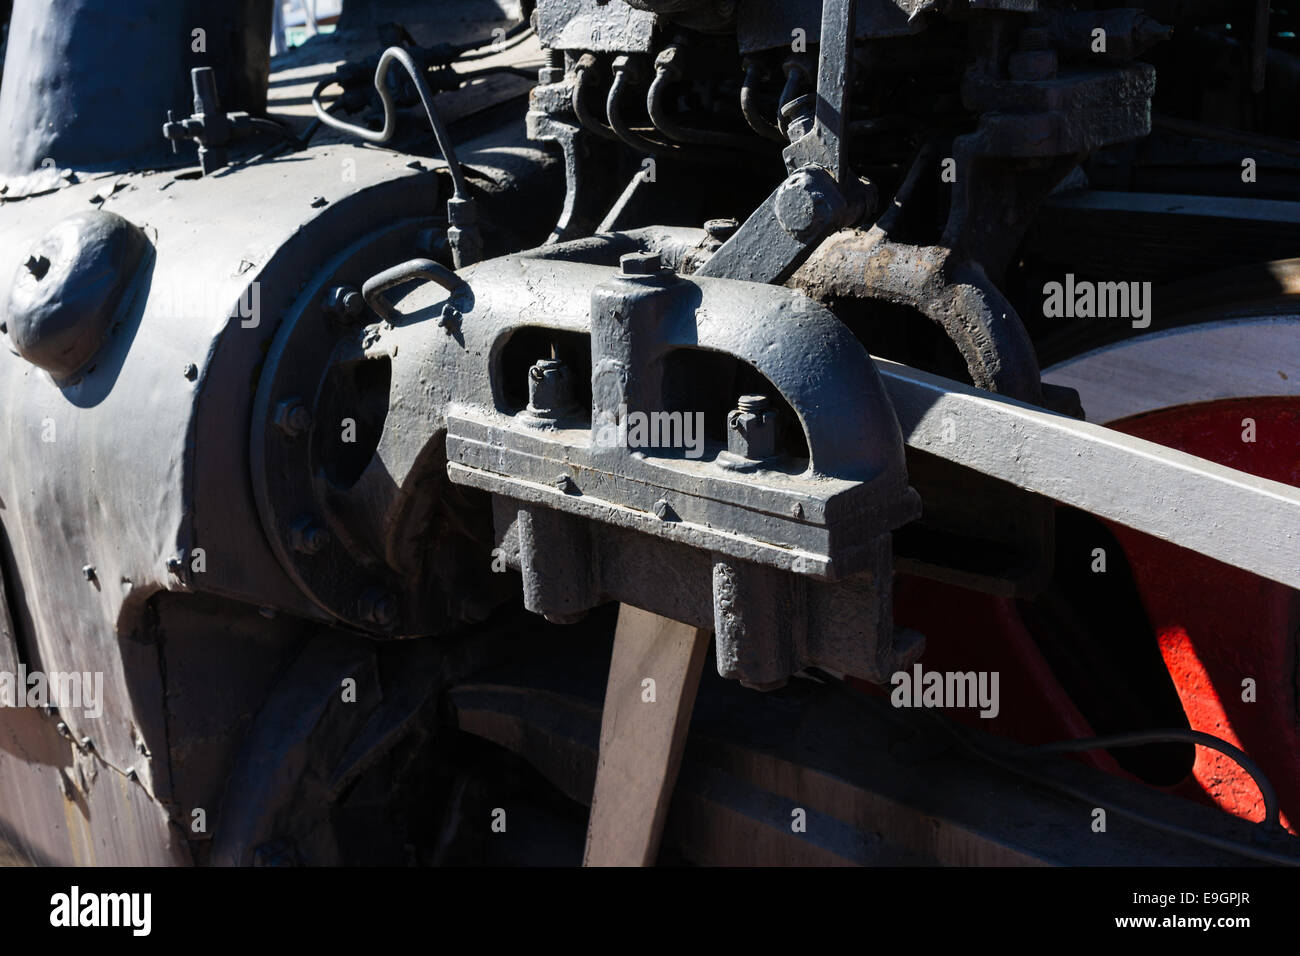 View of the piston mechanism of an old steam locomotive. Black metal and red wheel - Stock Image